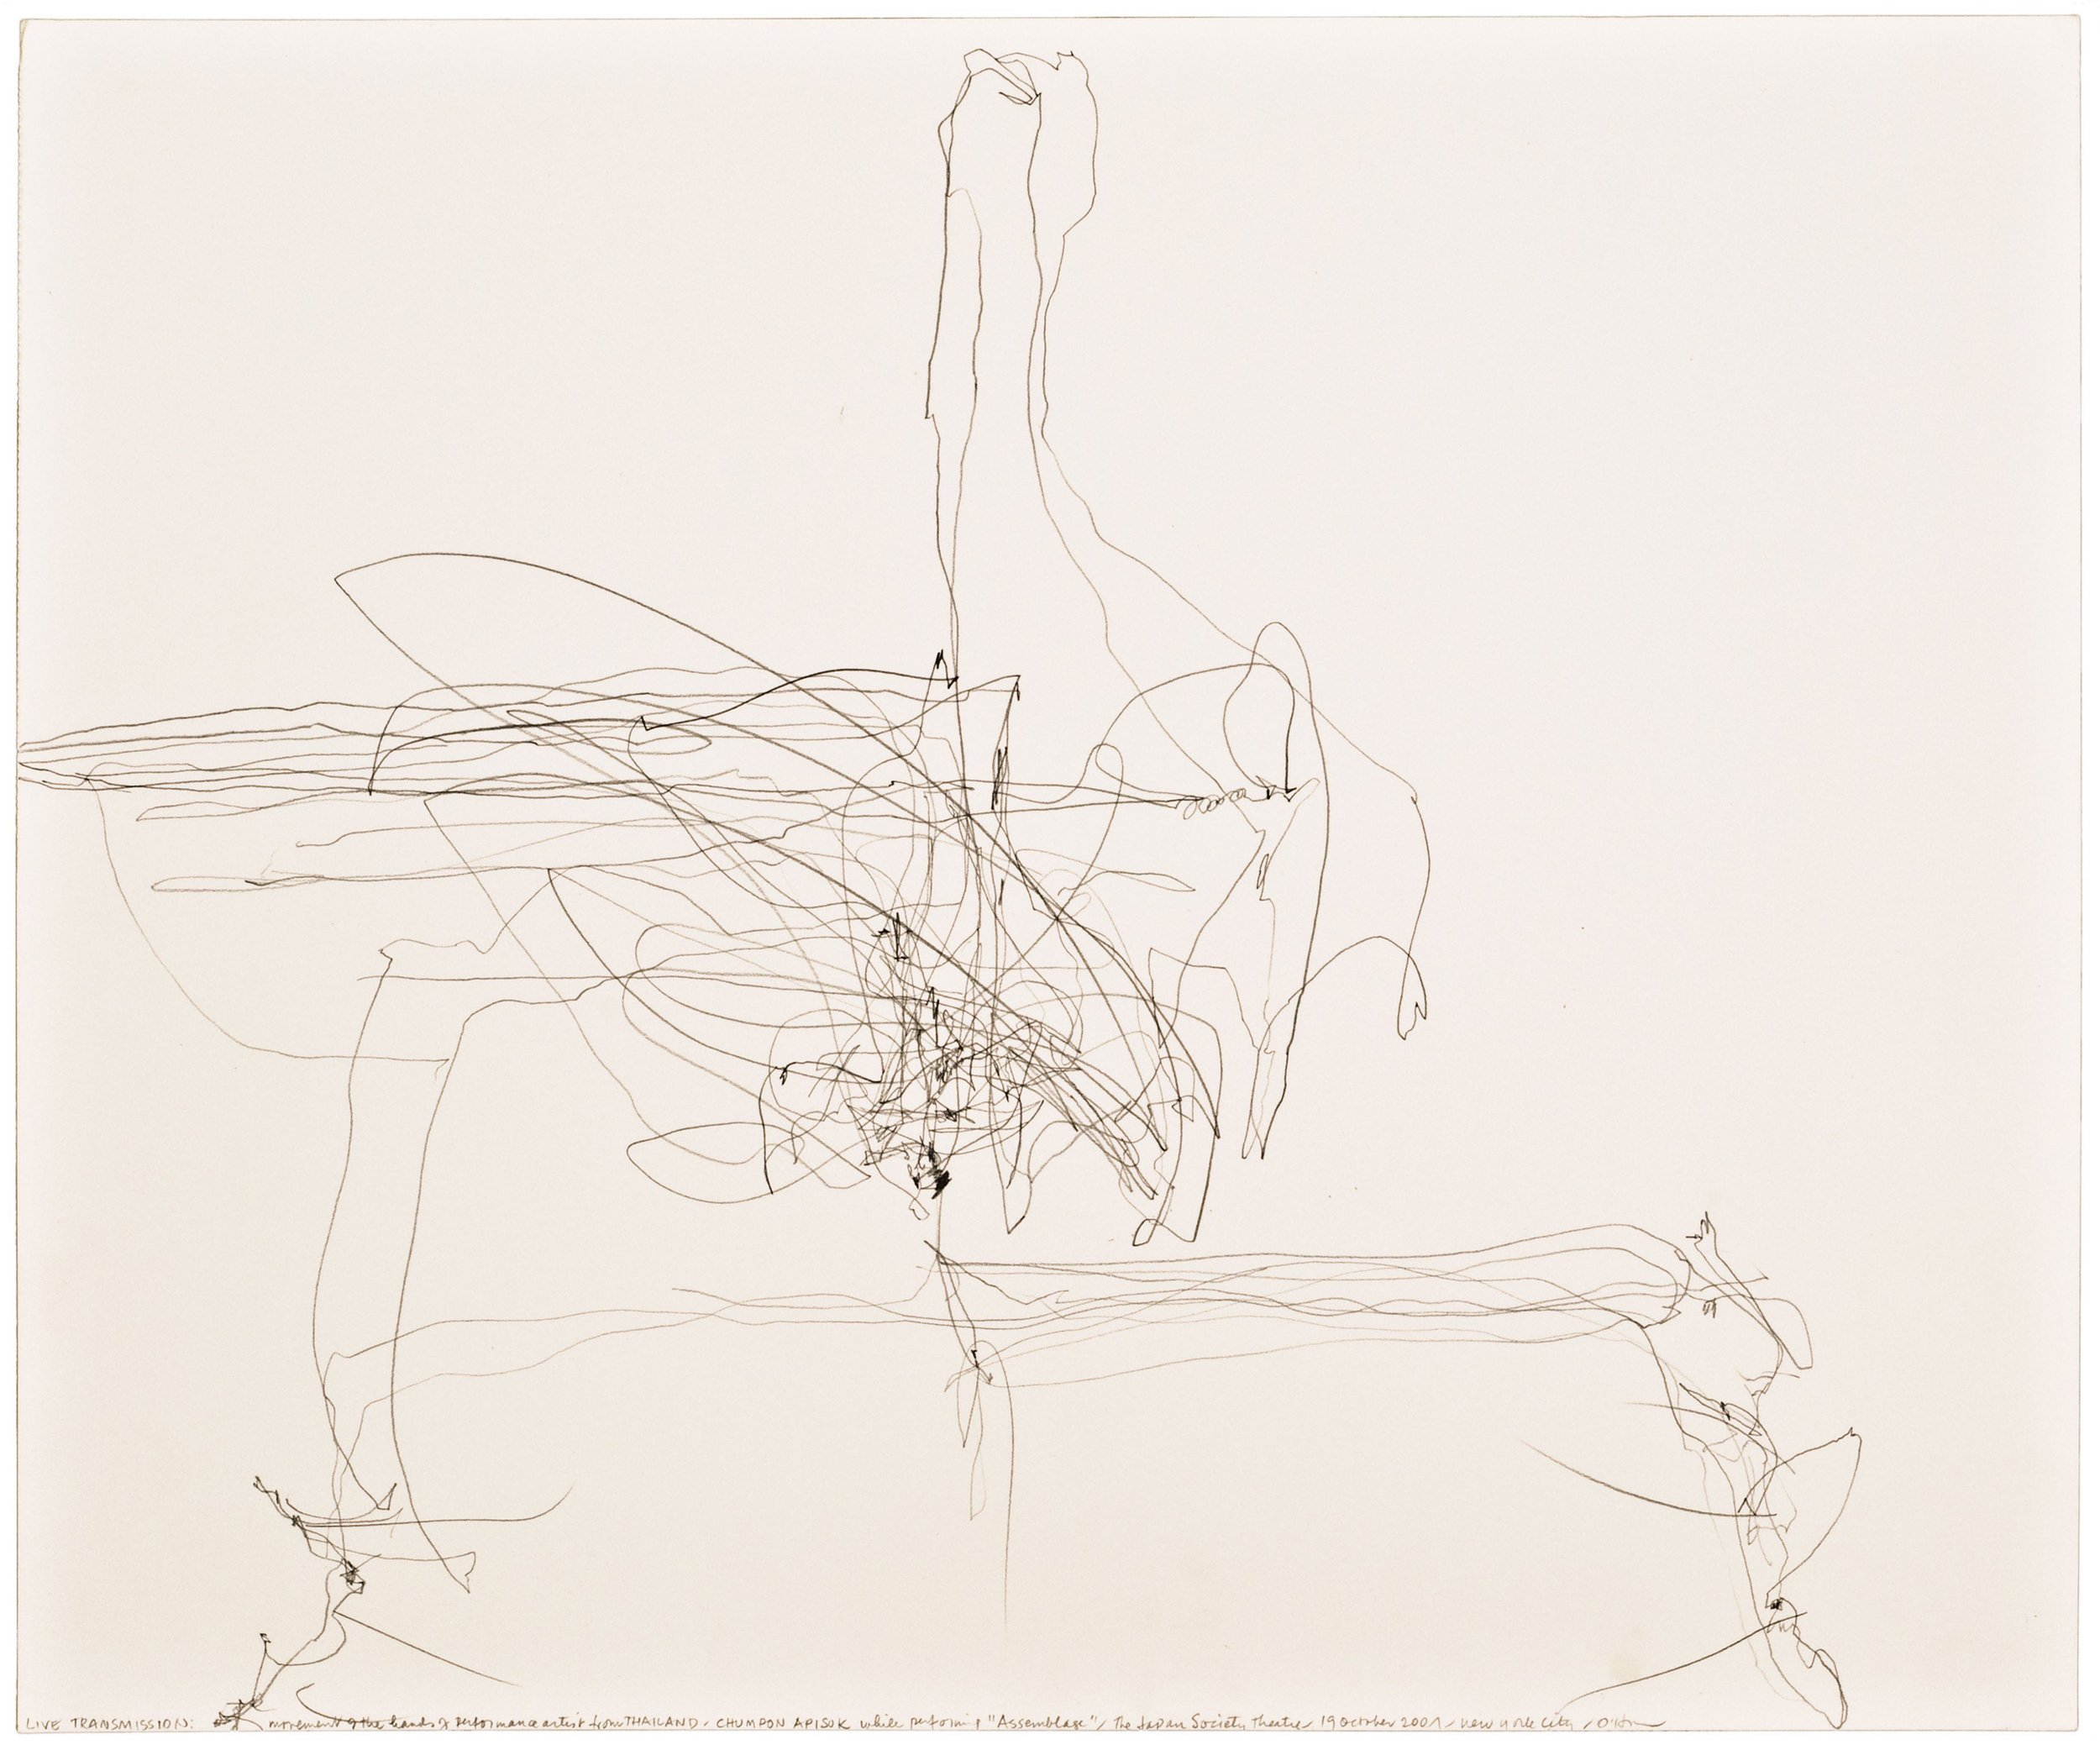 Morgan O'Hara, LIVE TRANSMISSION: movement of the hands of peformance artist from Thailand CHUMPON APISUK / while performing Assemblage/ The Japan Society Theatre / 19 October 2001/ New York City, 14 x 17 in.,Graphite on Bristol paper, 2001